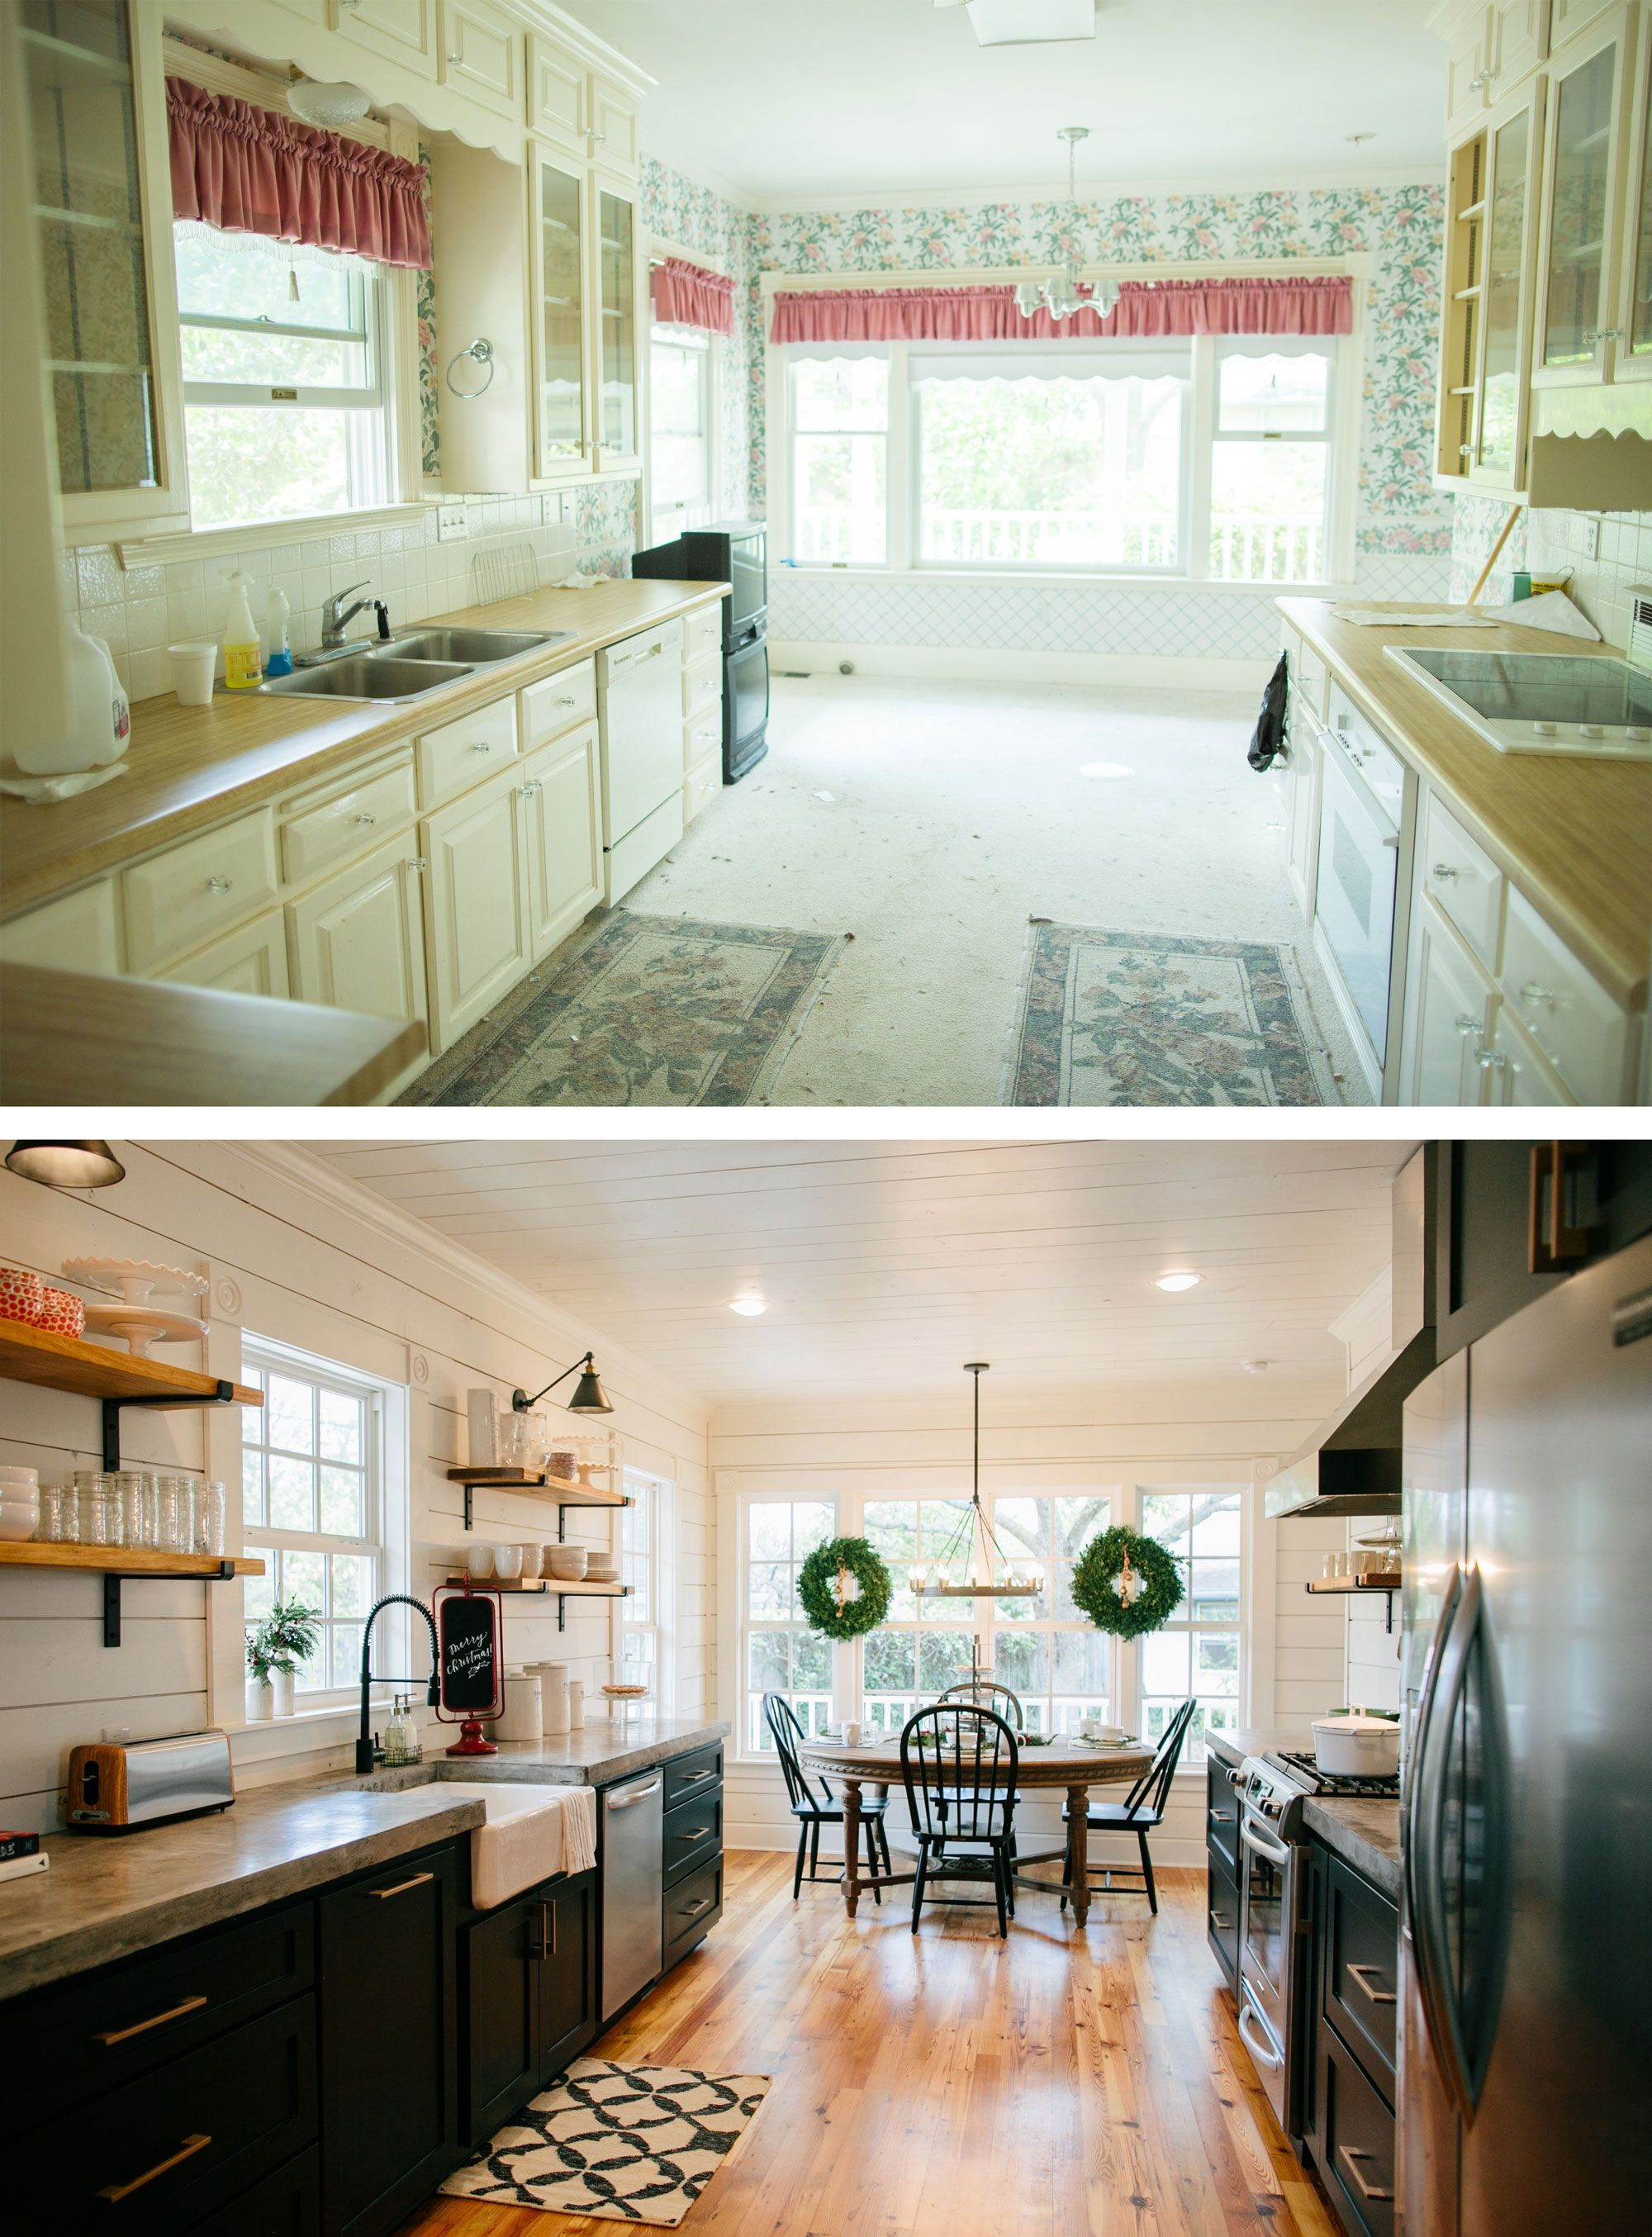 Fixer upper eat in kitchen - 1000 Images About Kitchen On Pinterest House Tours Eat In Kitchen And Glasses